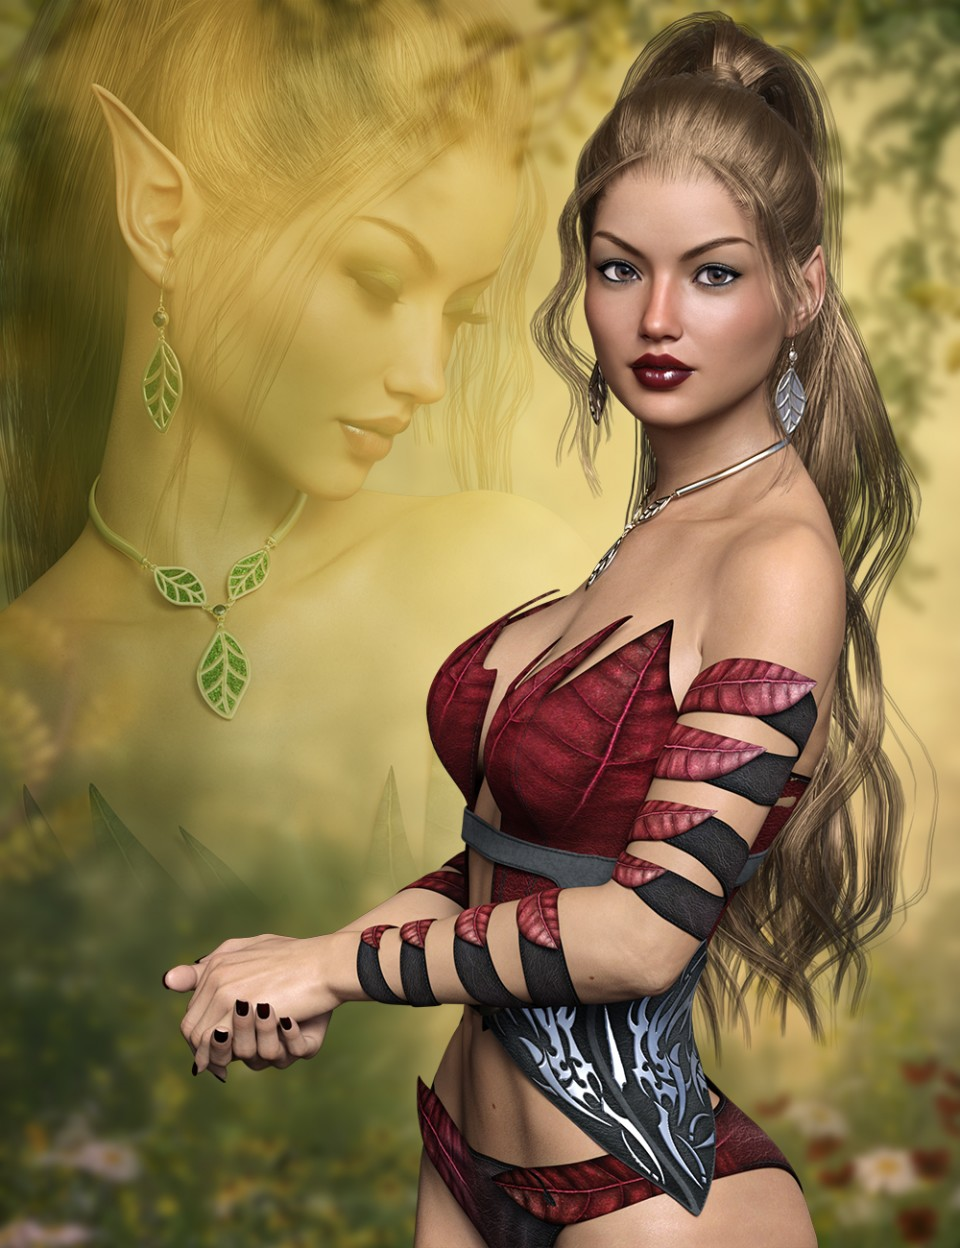 FWSA Vanessa HD for Victoria 7 and her Jewelry_DAZ3D下载站